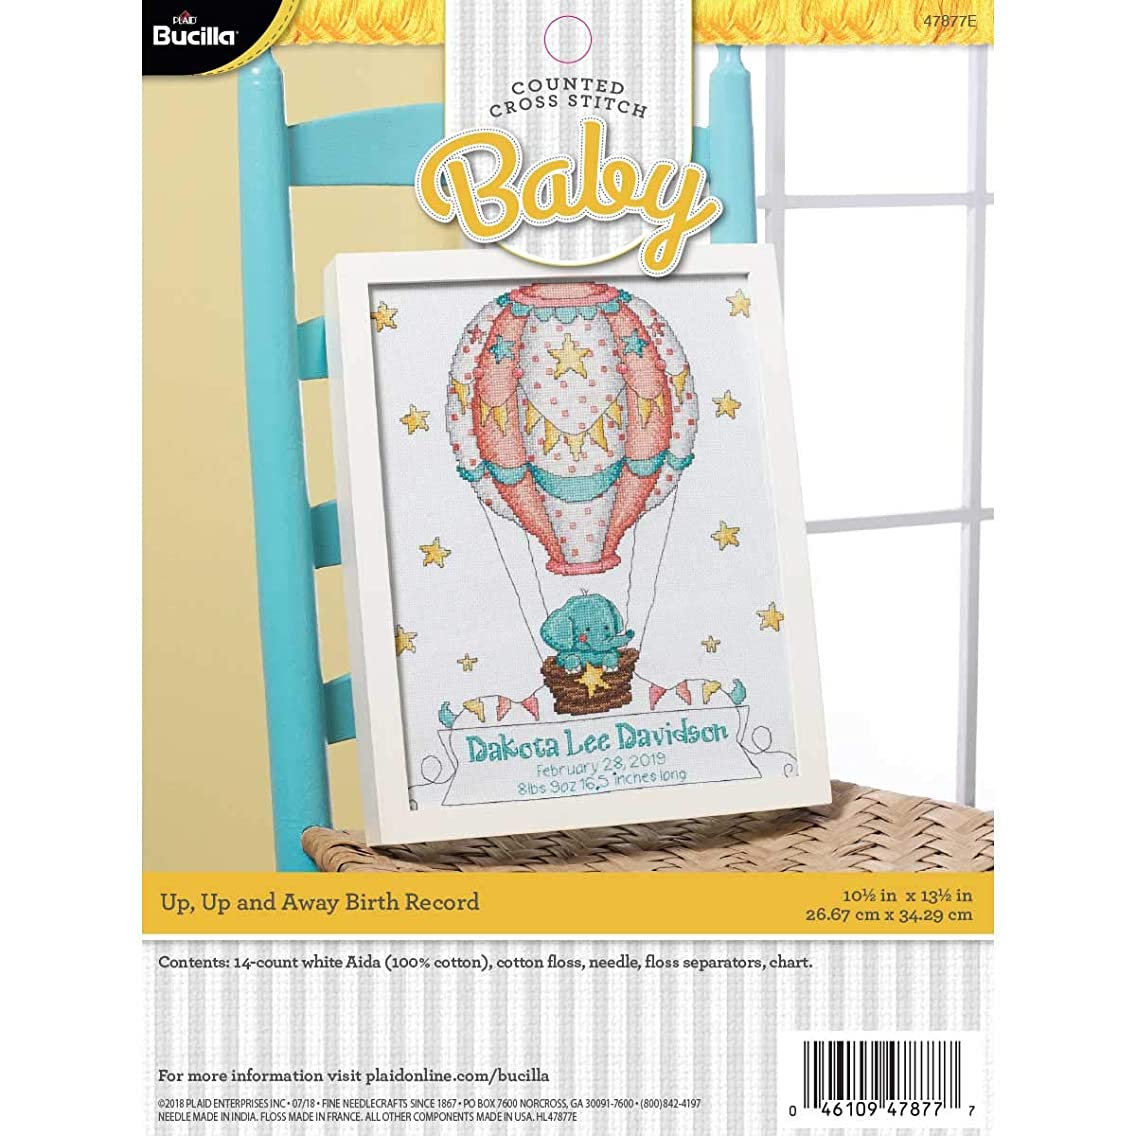 Bucilla 47877E Stamped Cross Stitch Baby Birth Record, Up Up and Away